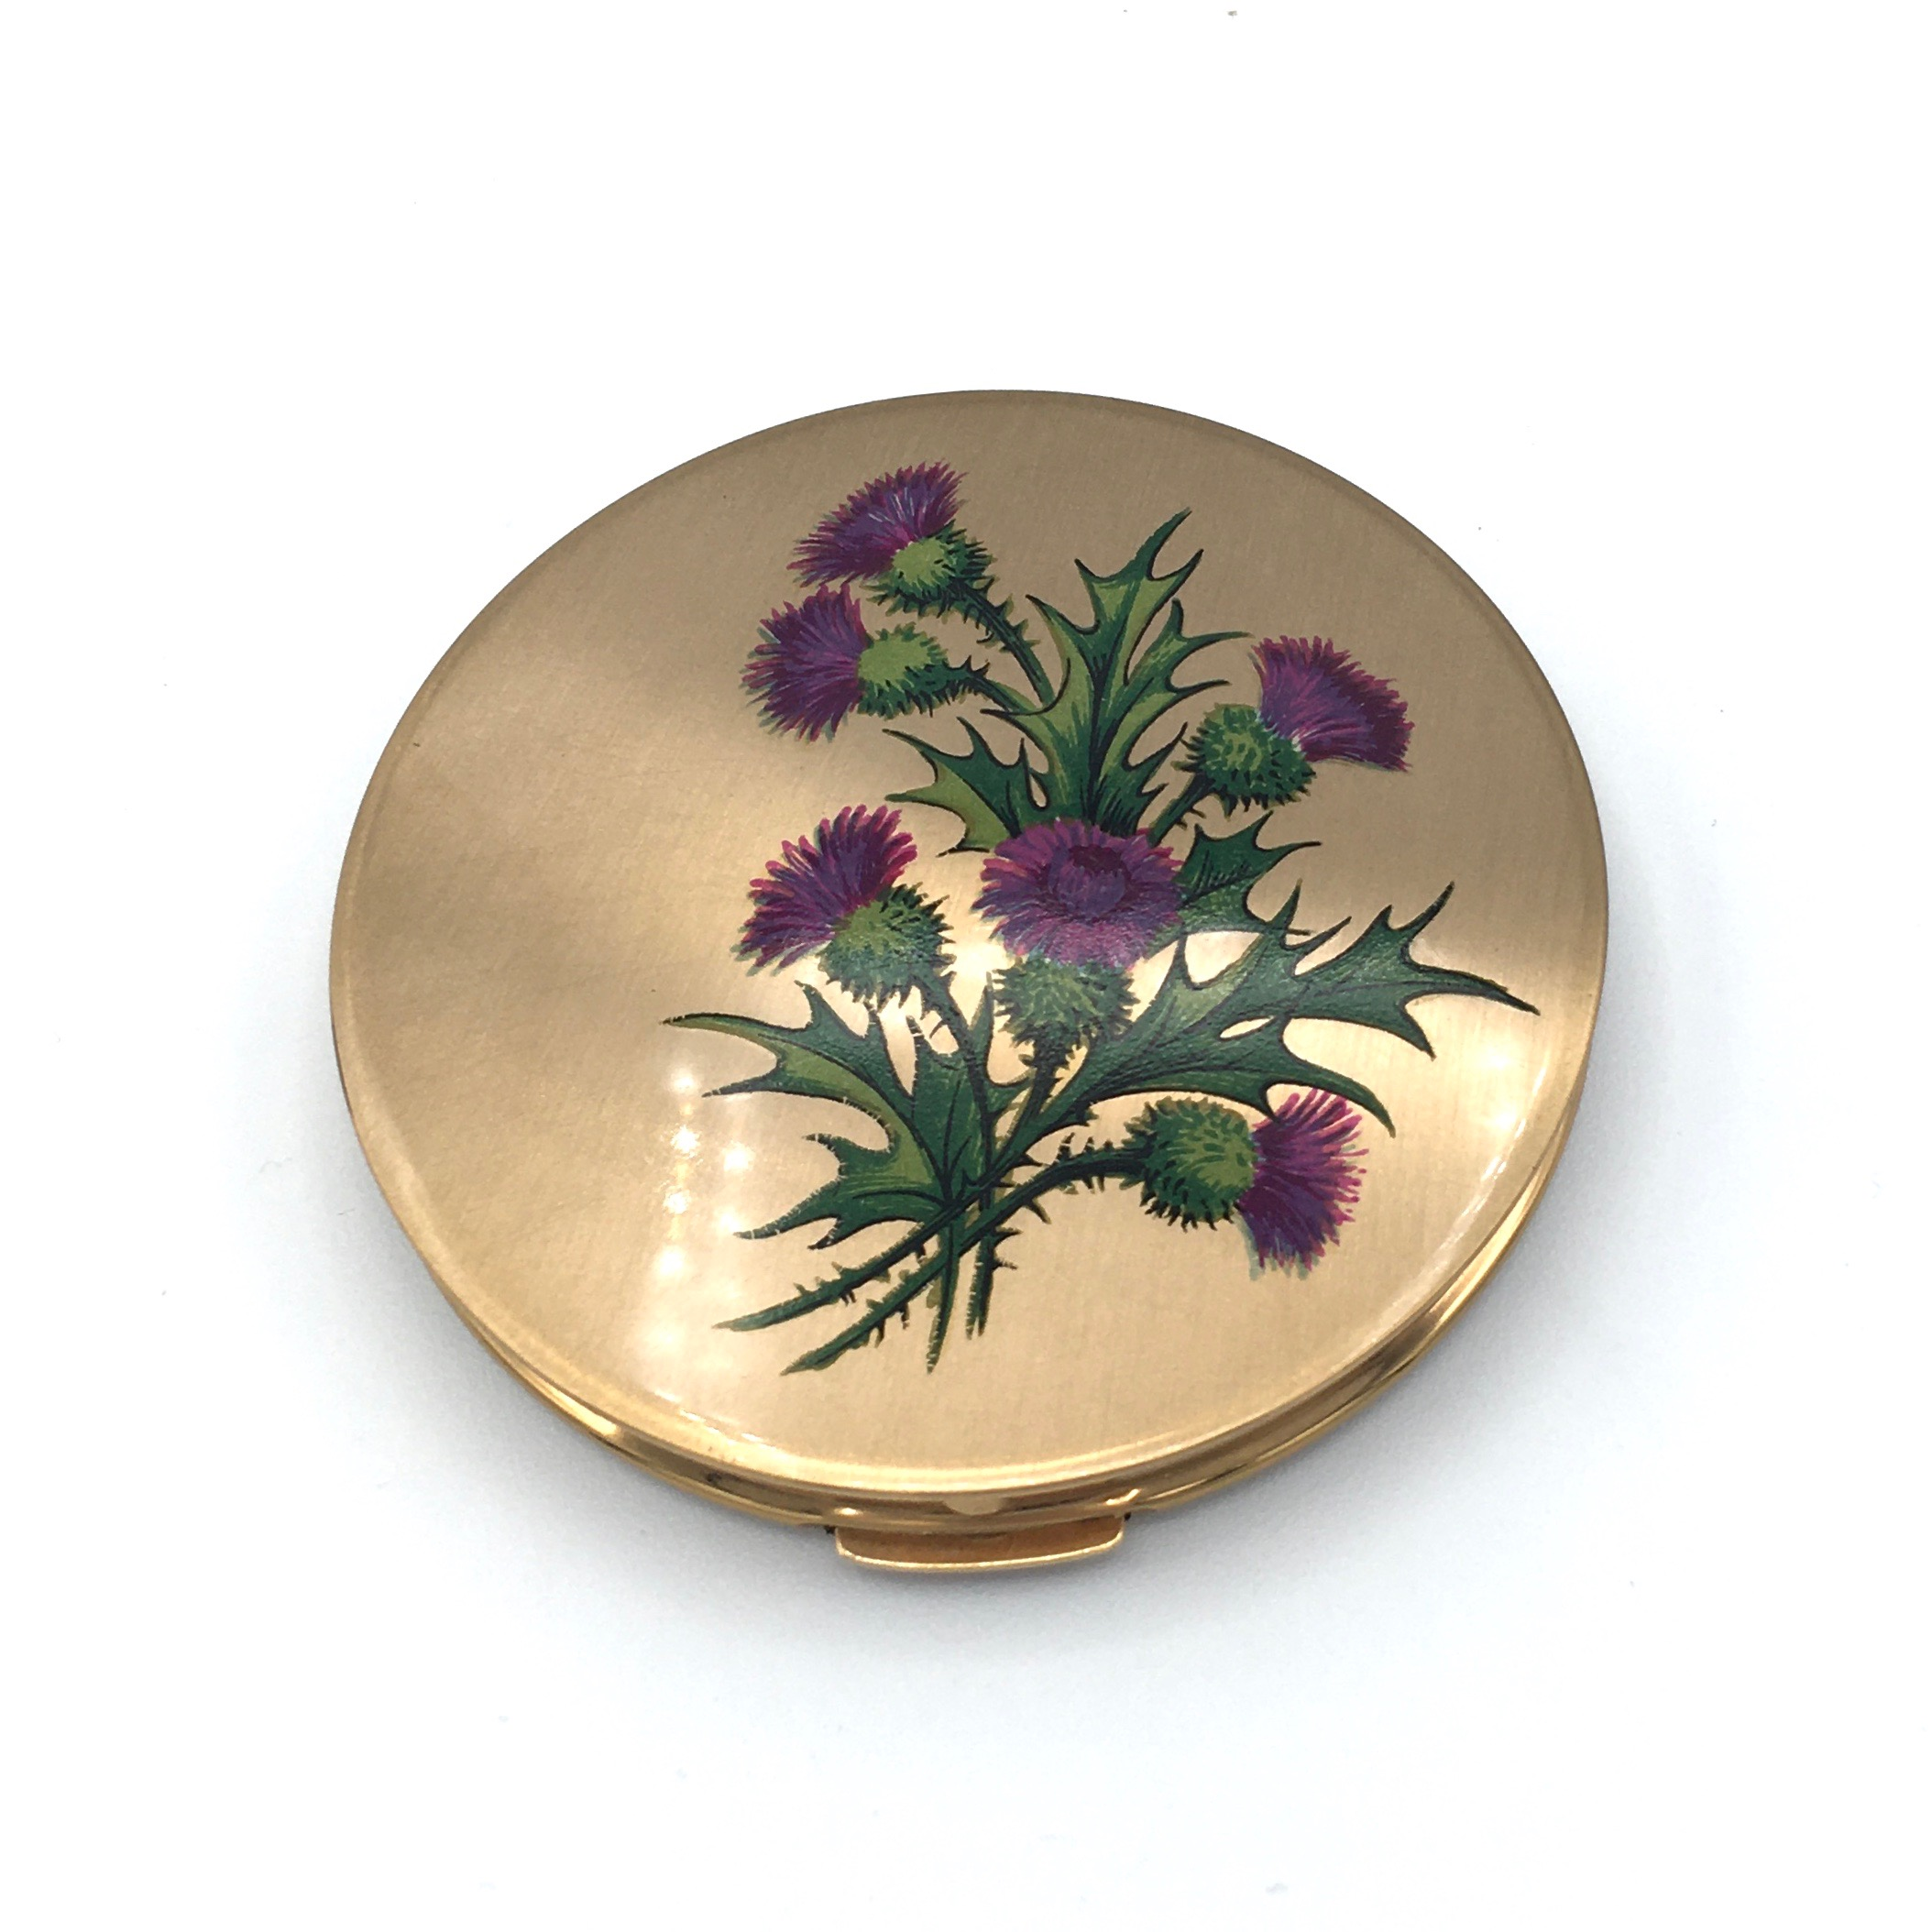 Stratton Compact with Thistle Design